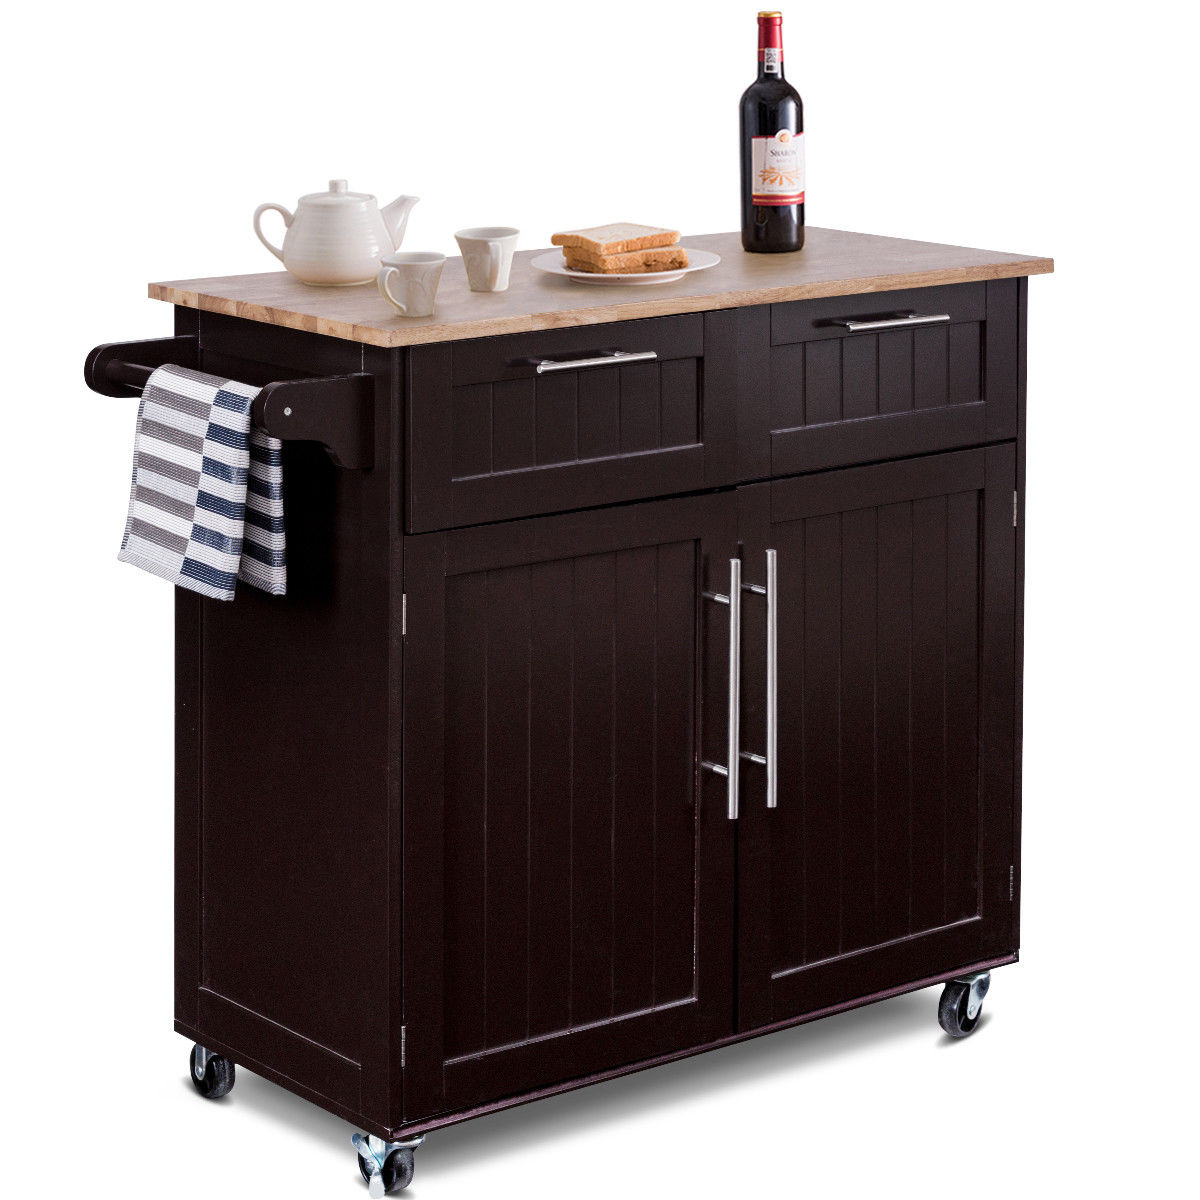 Rolling Kitchen Cabinets: Costway Rolling Kitchen Cart Island Heavy Duty Storage